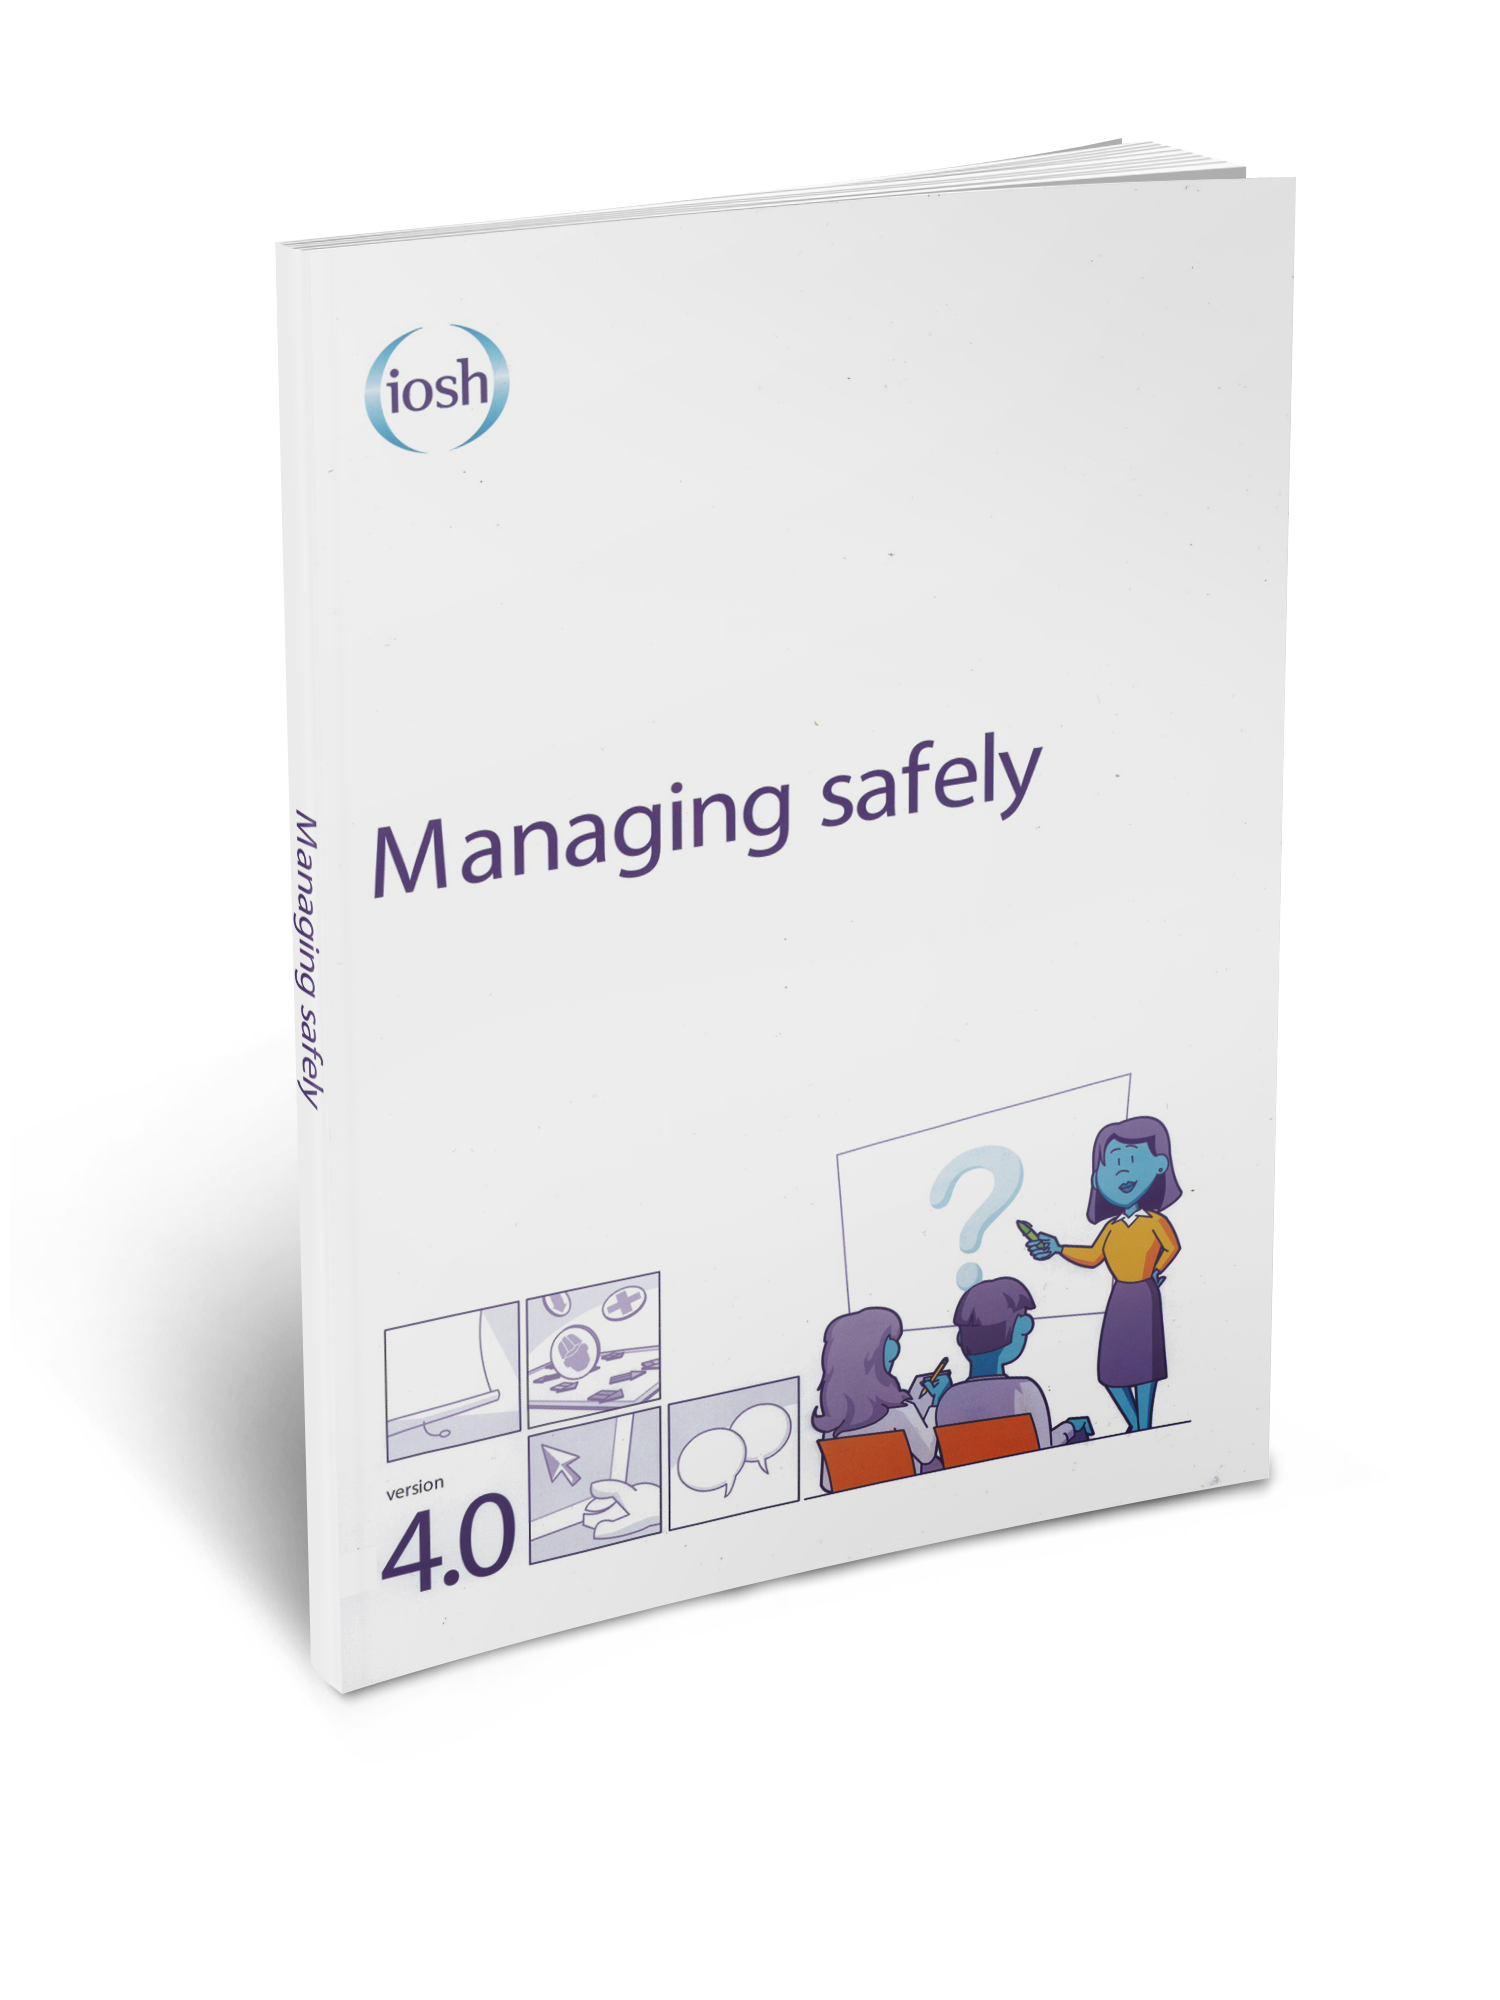 iosh managing safely, iosh managing safely online